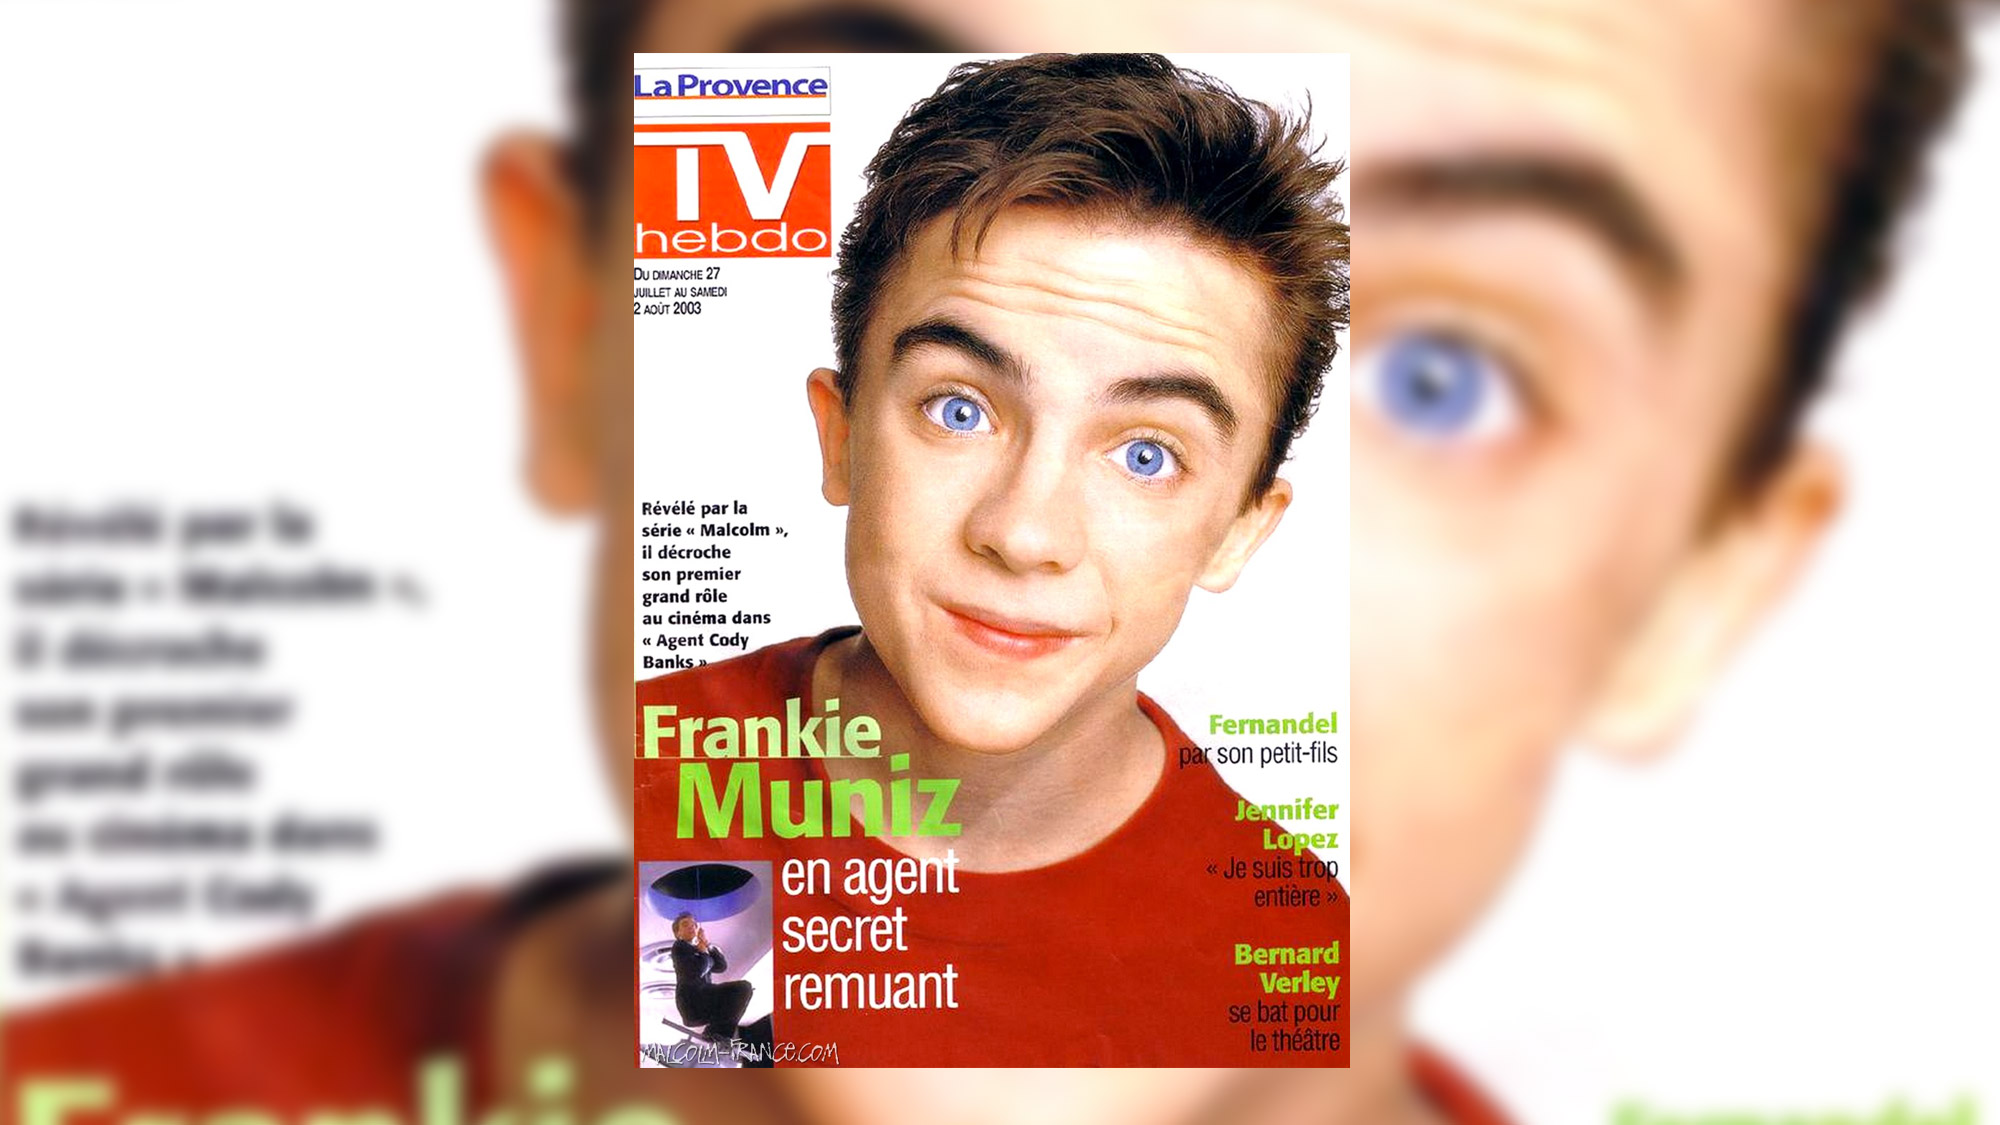 Frankie Muniz en agent secret remuant